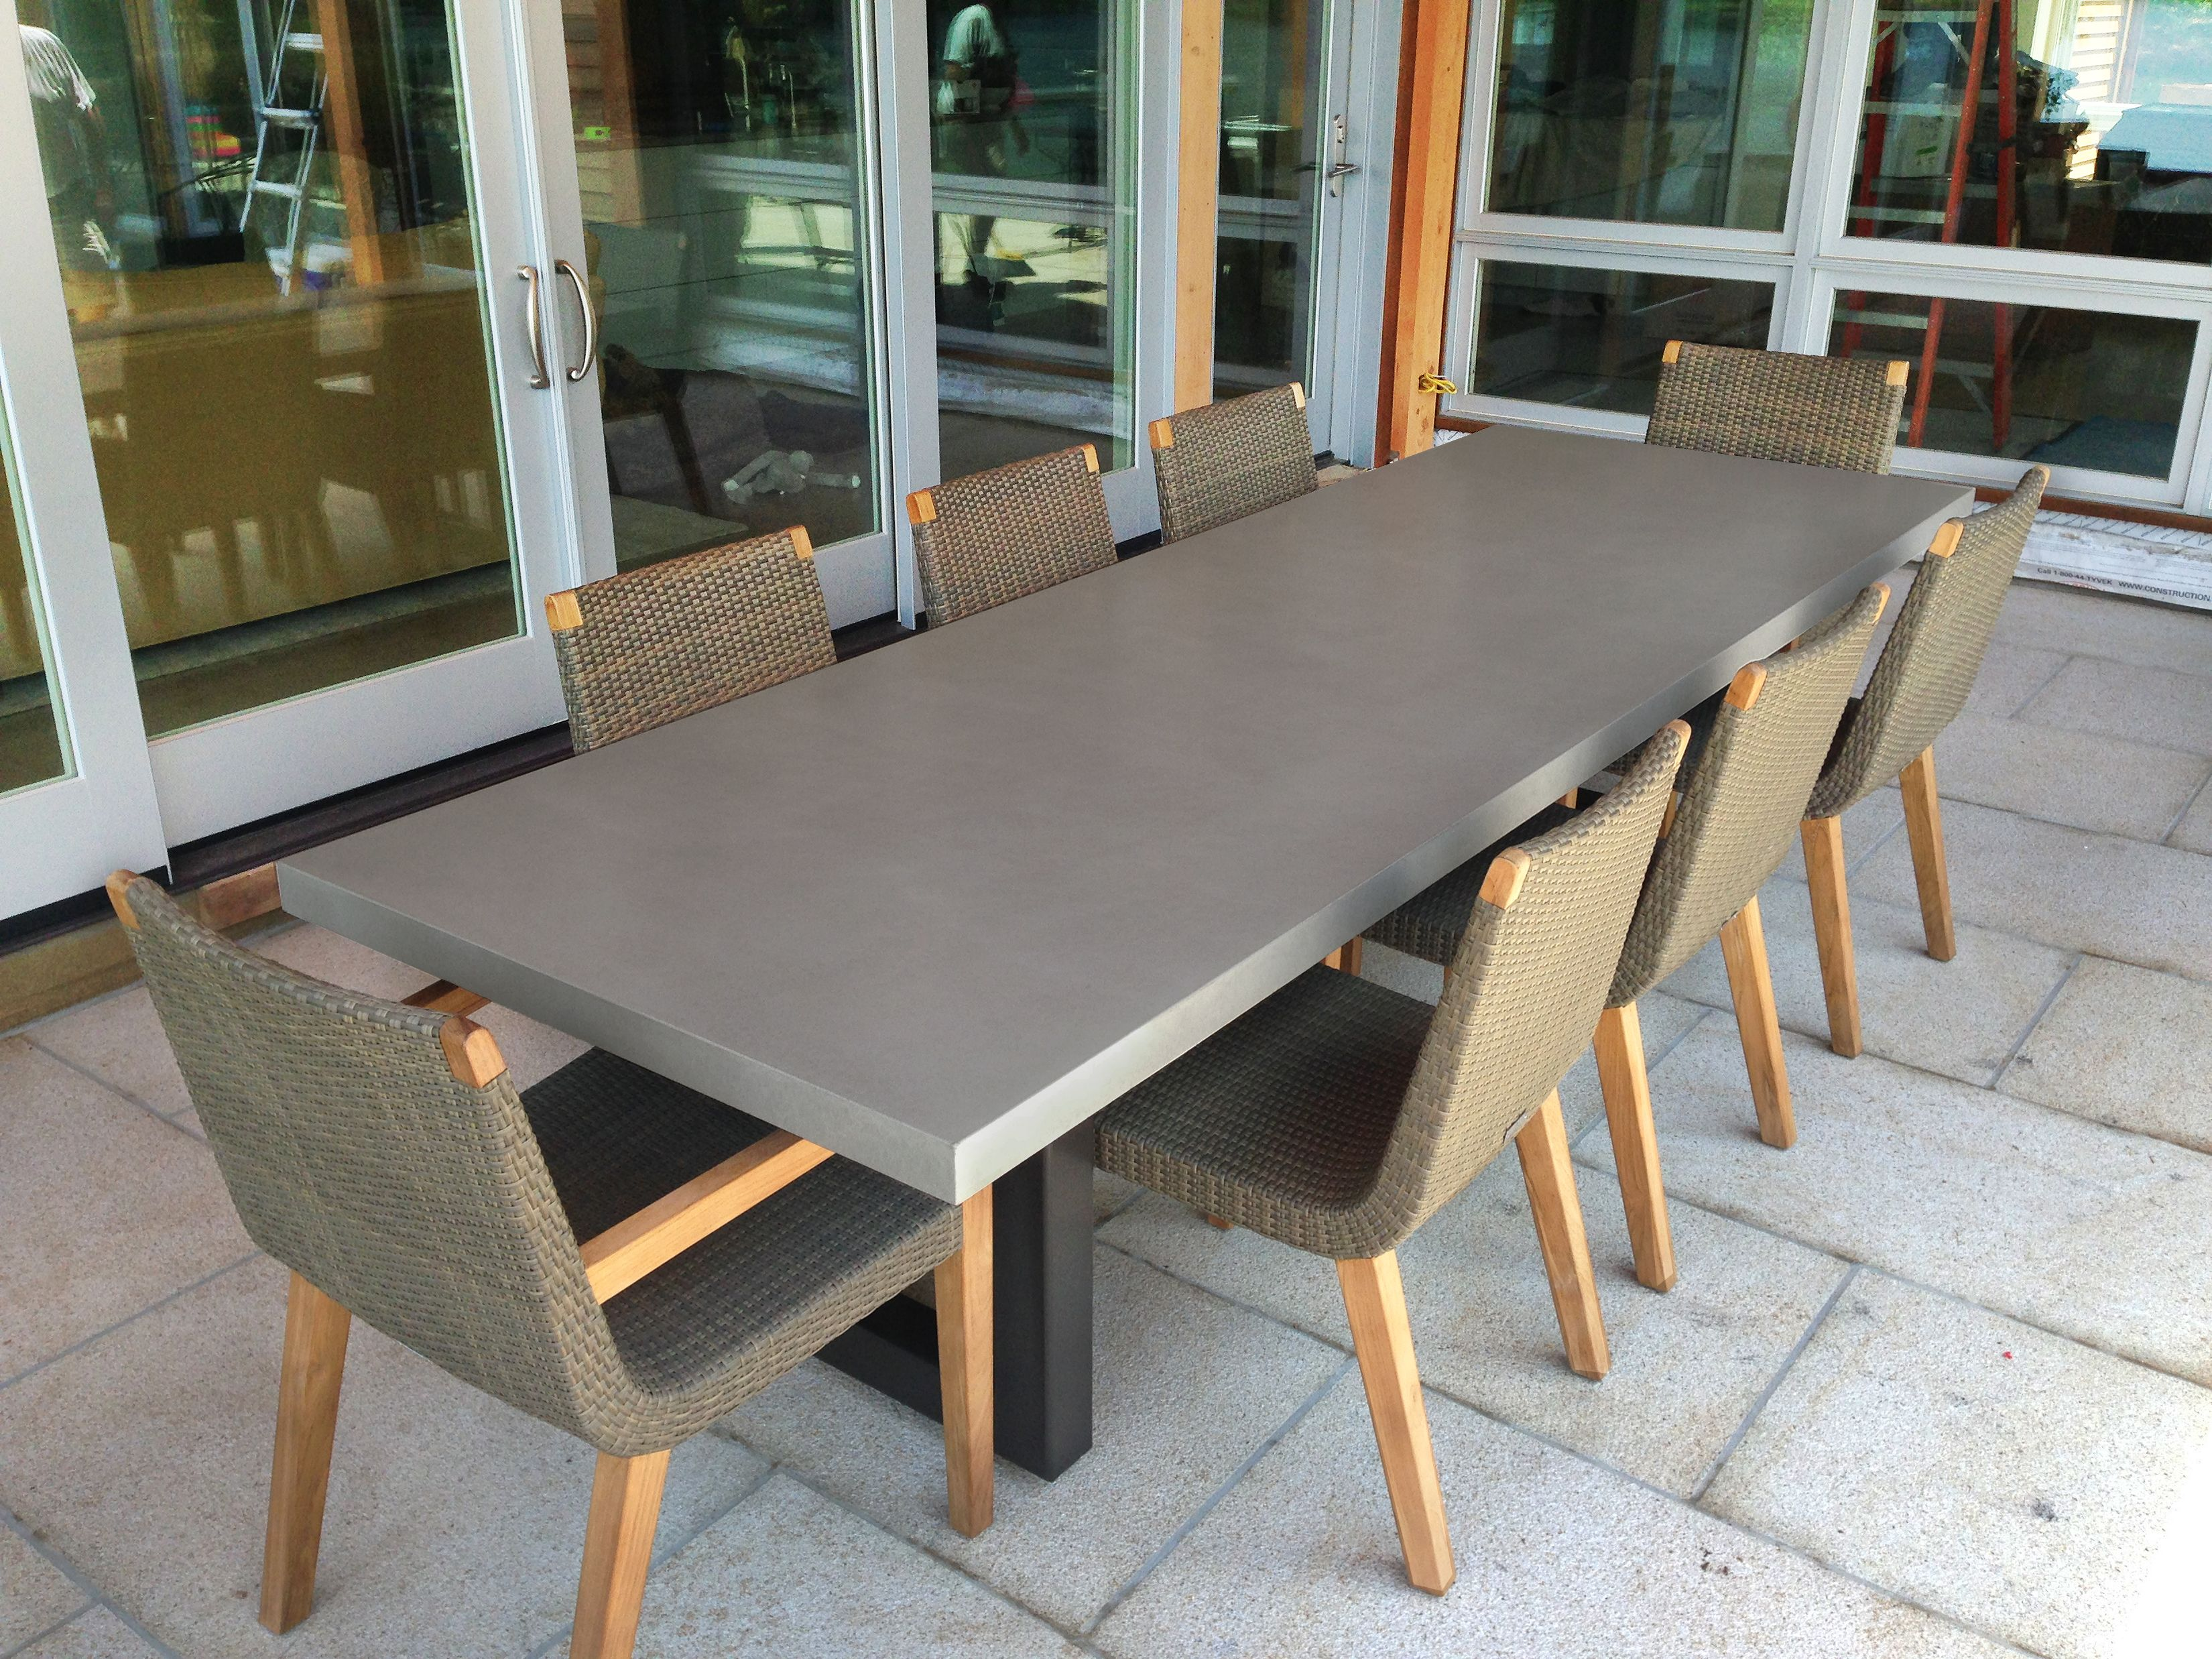 Zen Concrete Dining Table in 2020 Dining table, Concrete